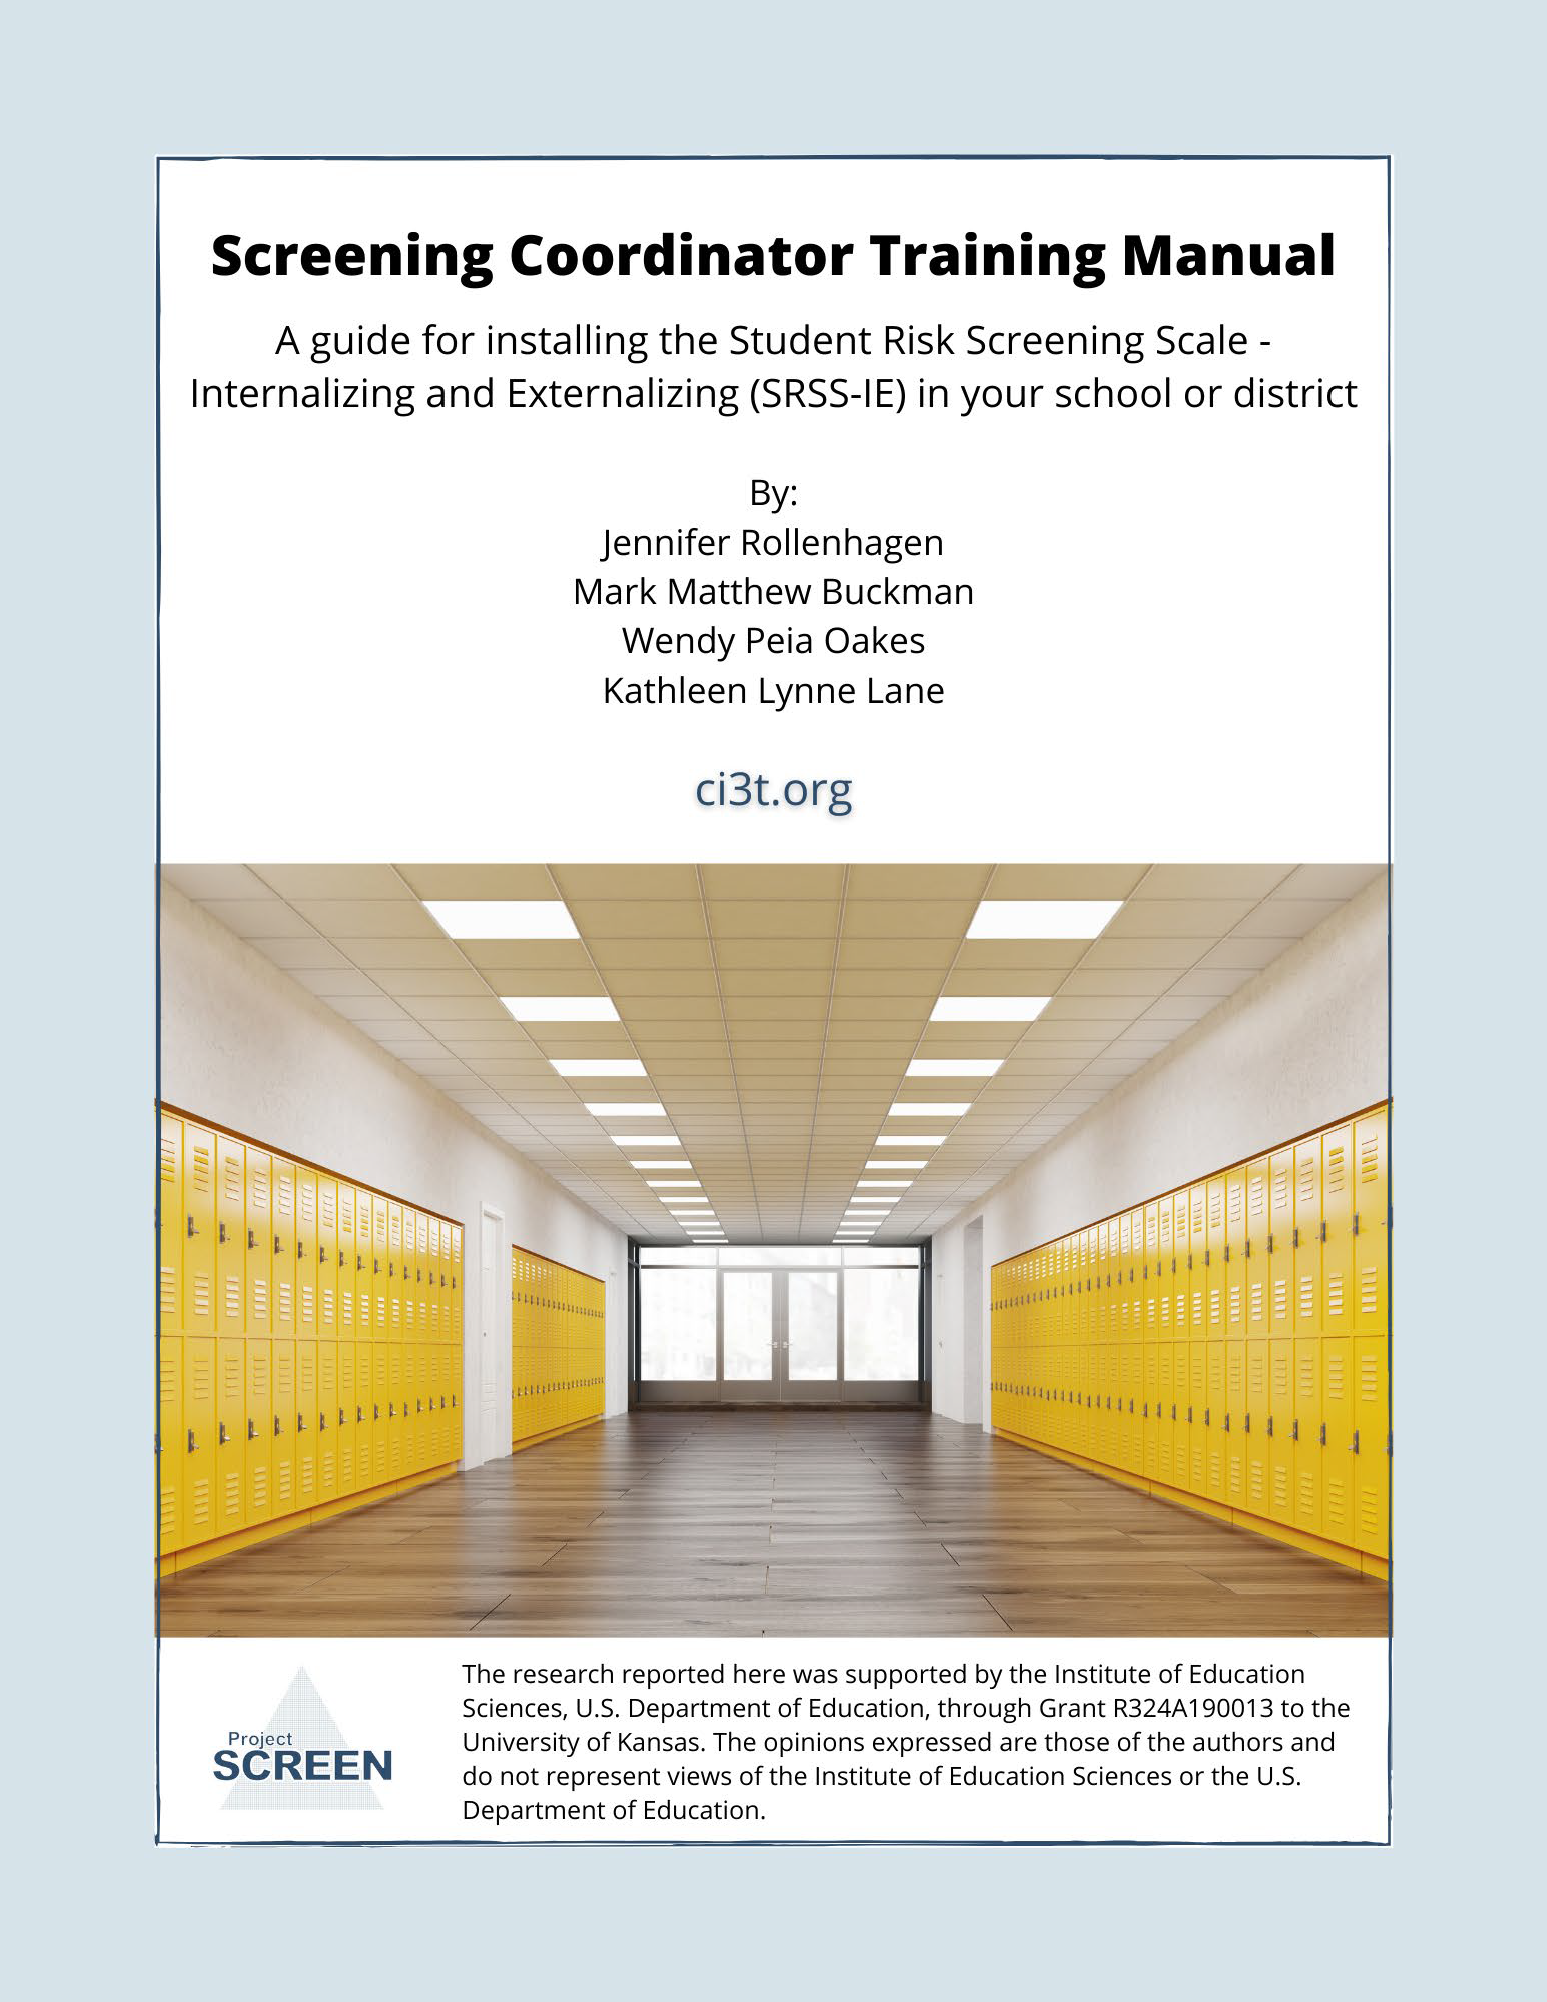 Screening Coordinator Training Manual: A Guide for Installing the SRSS-IE in your School or District